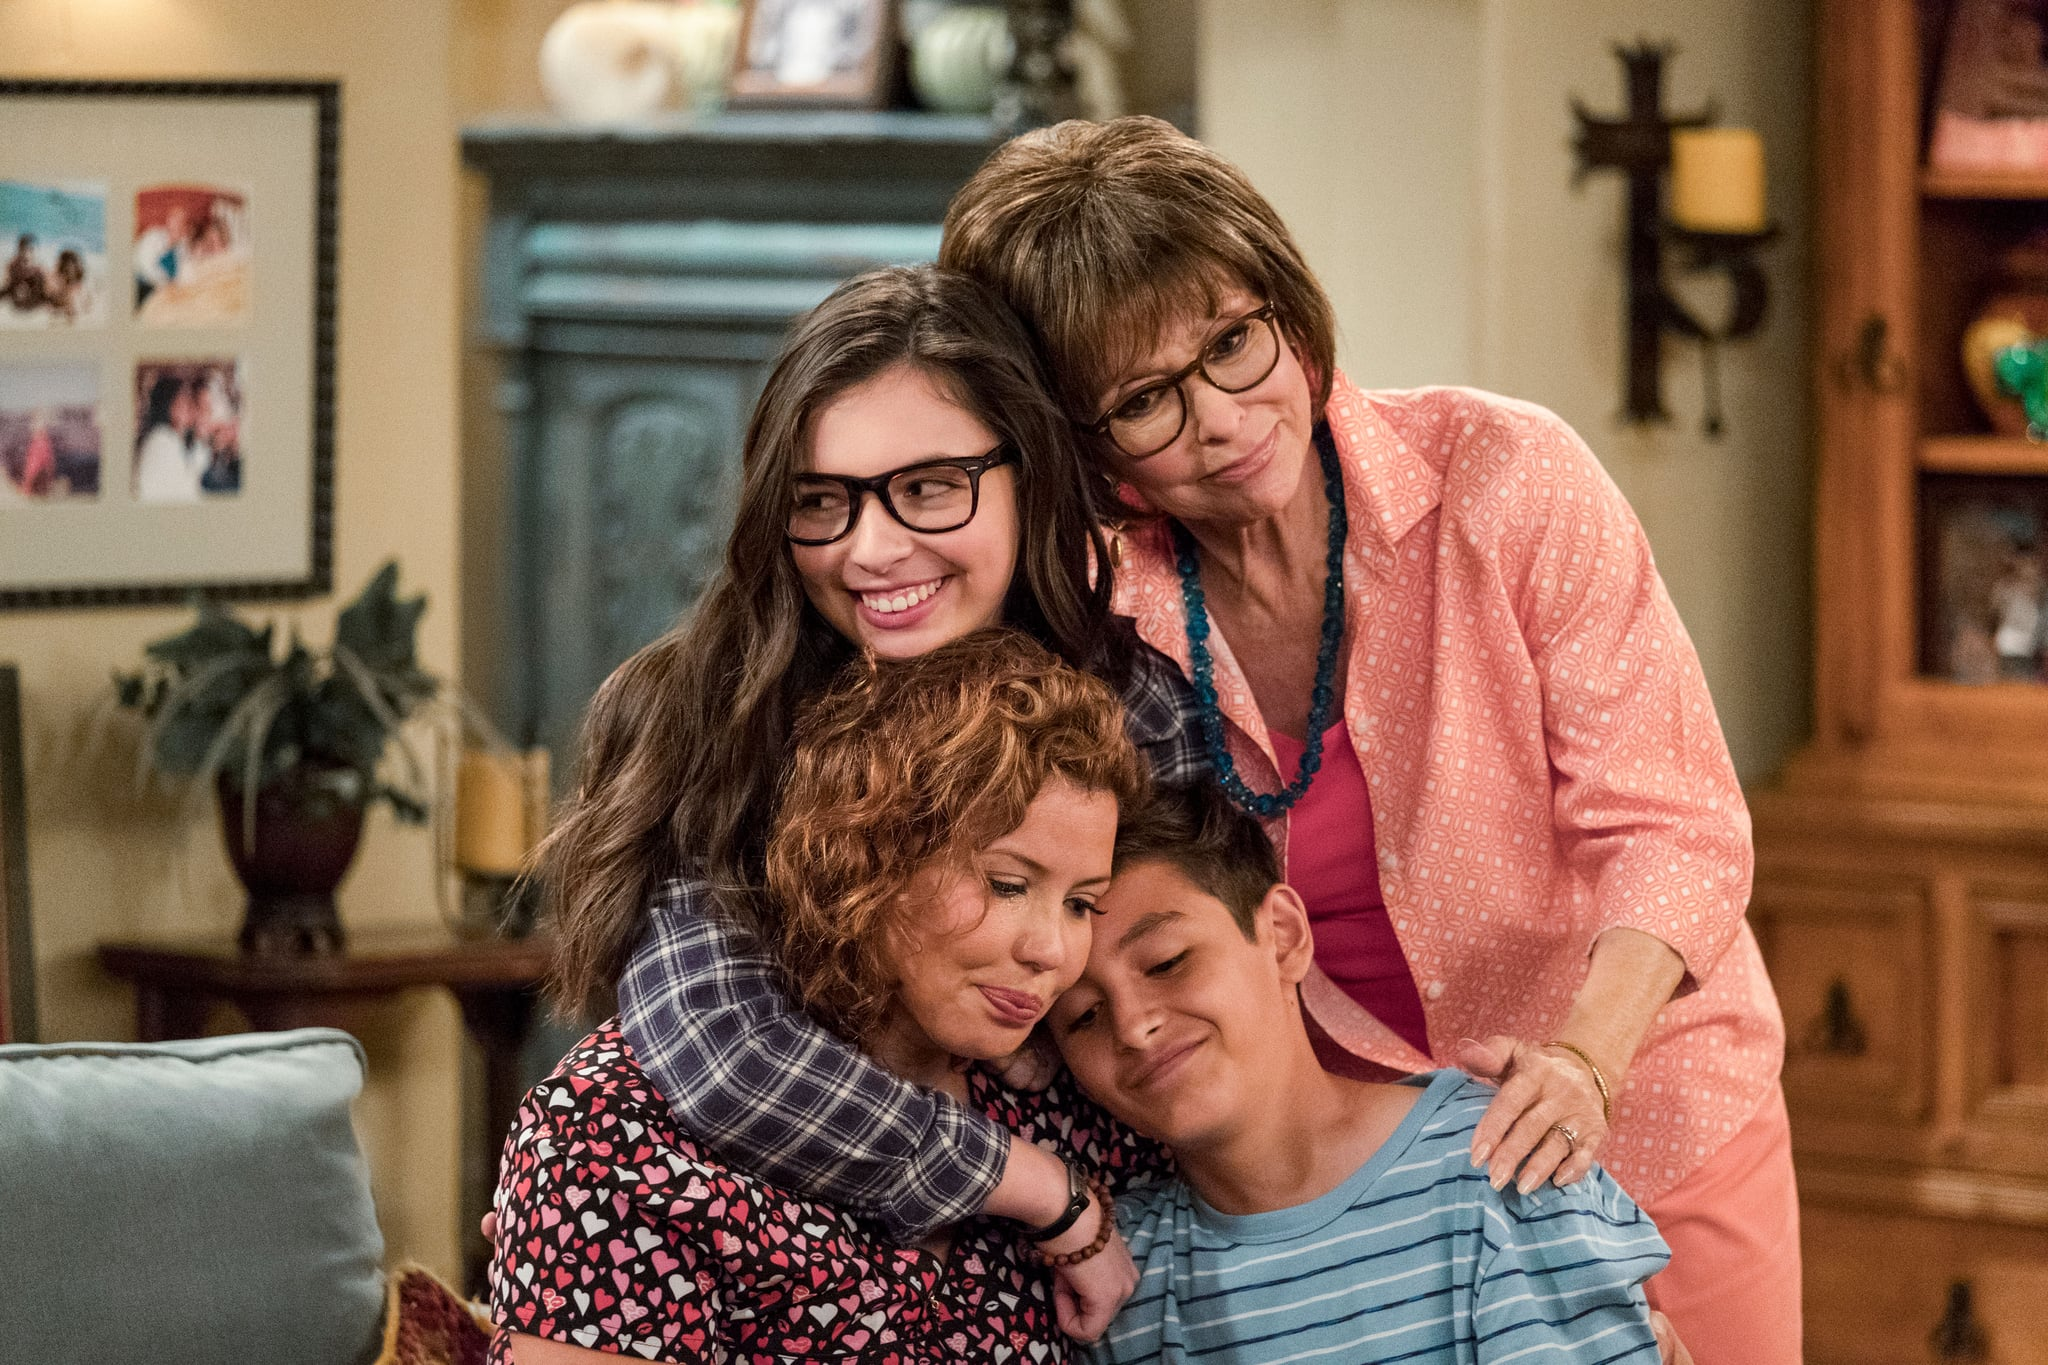 ONE DAY AT A TIME, Justina Machado, Isabella Gomez, Rita Moreno, Marcel Ruiz, (Season 2, Episode 202, aired January 26, 2018), ph: Adam Rose / Netflix / courtesy Everett Collection